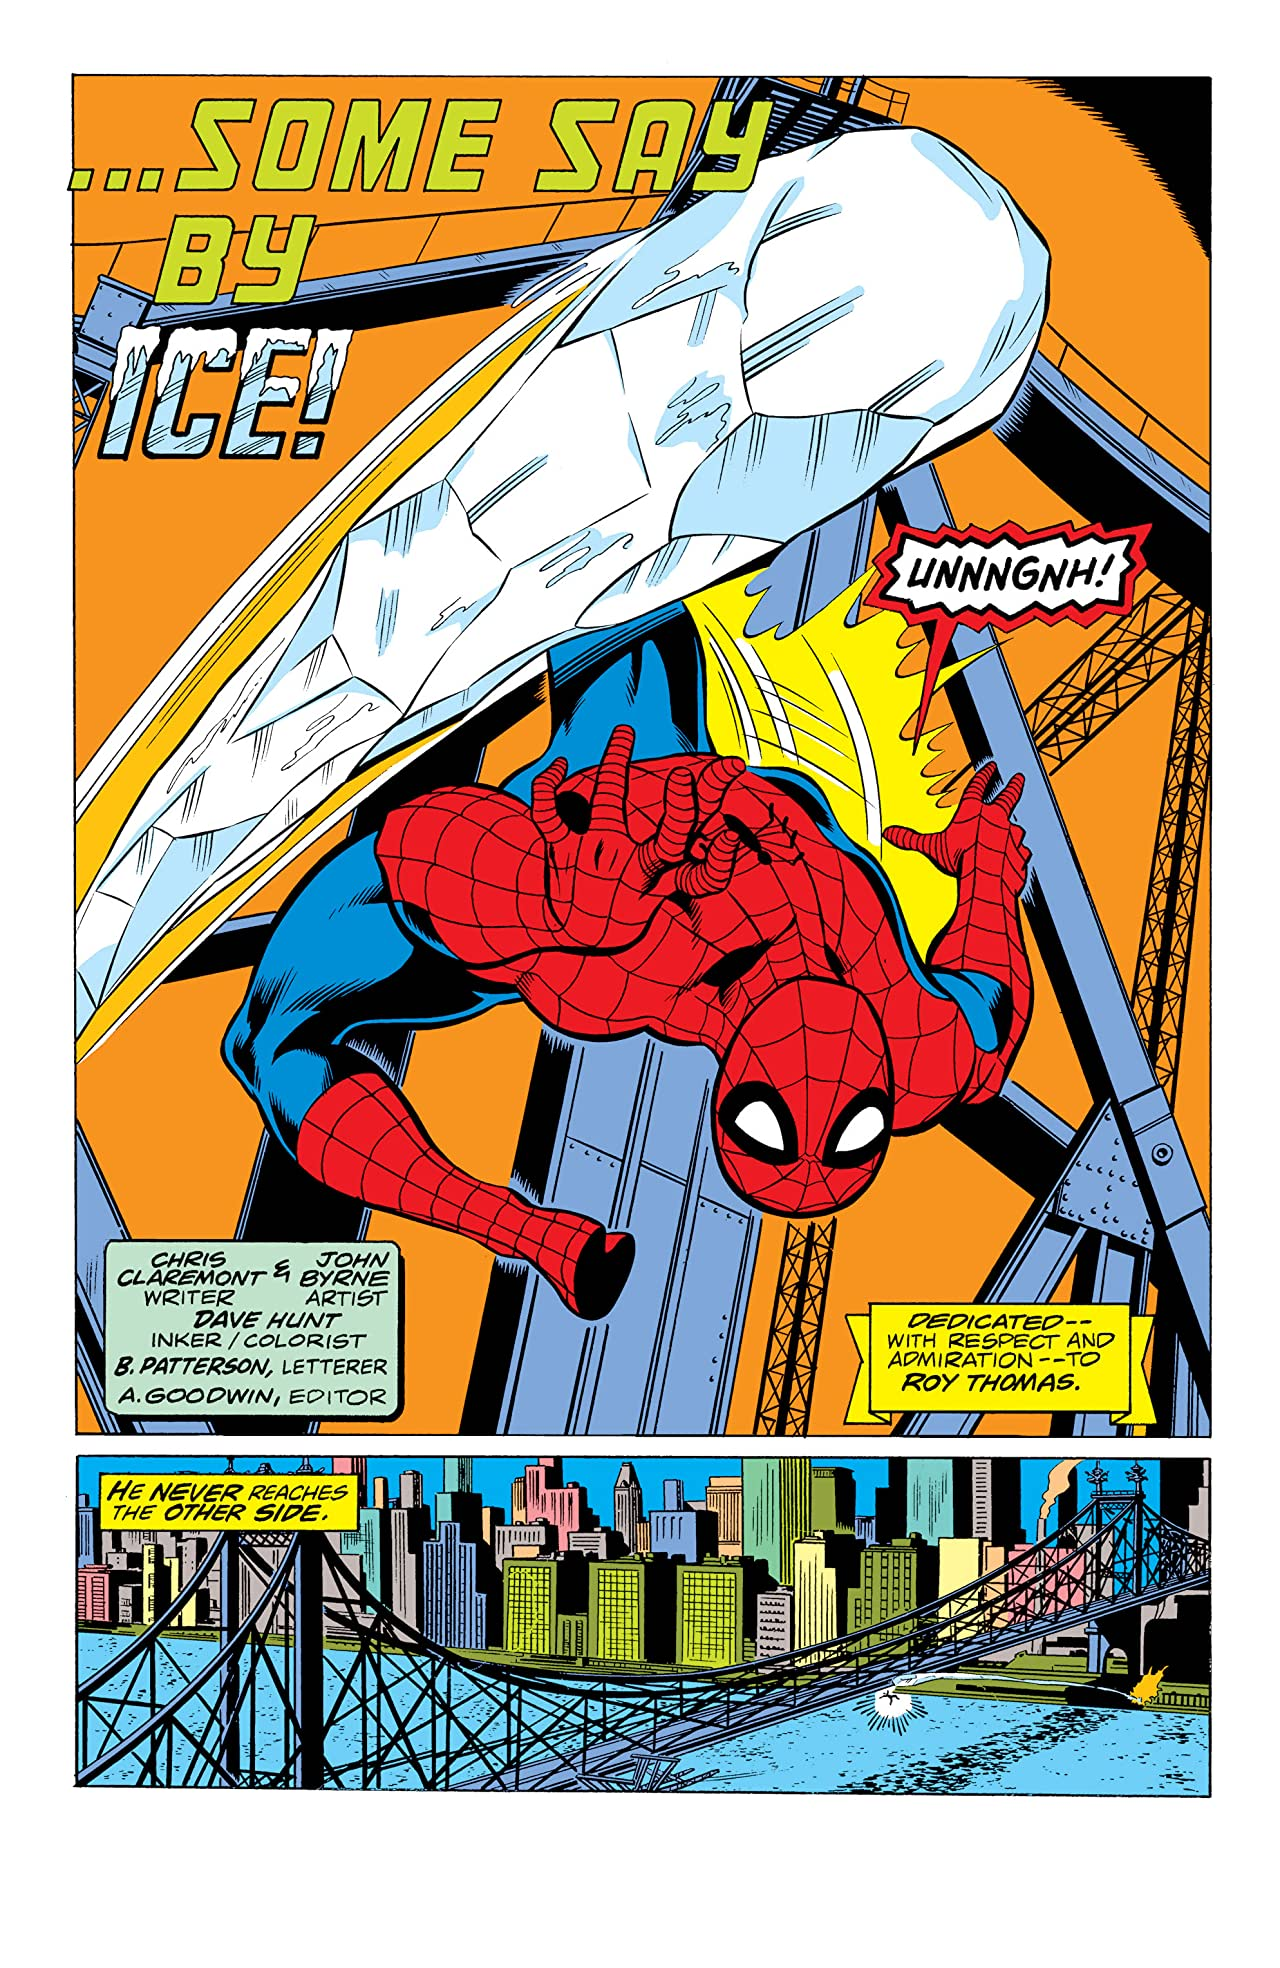 Spider-Man: Marvel Team-Up by Claremont and Byrne